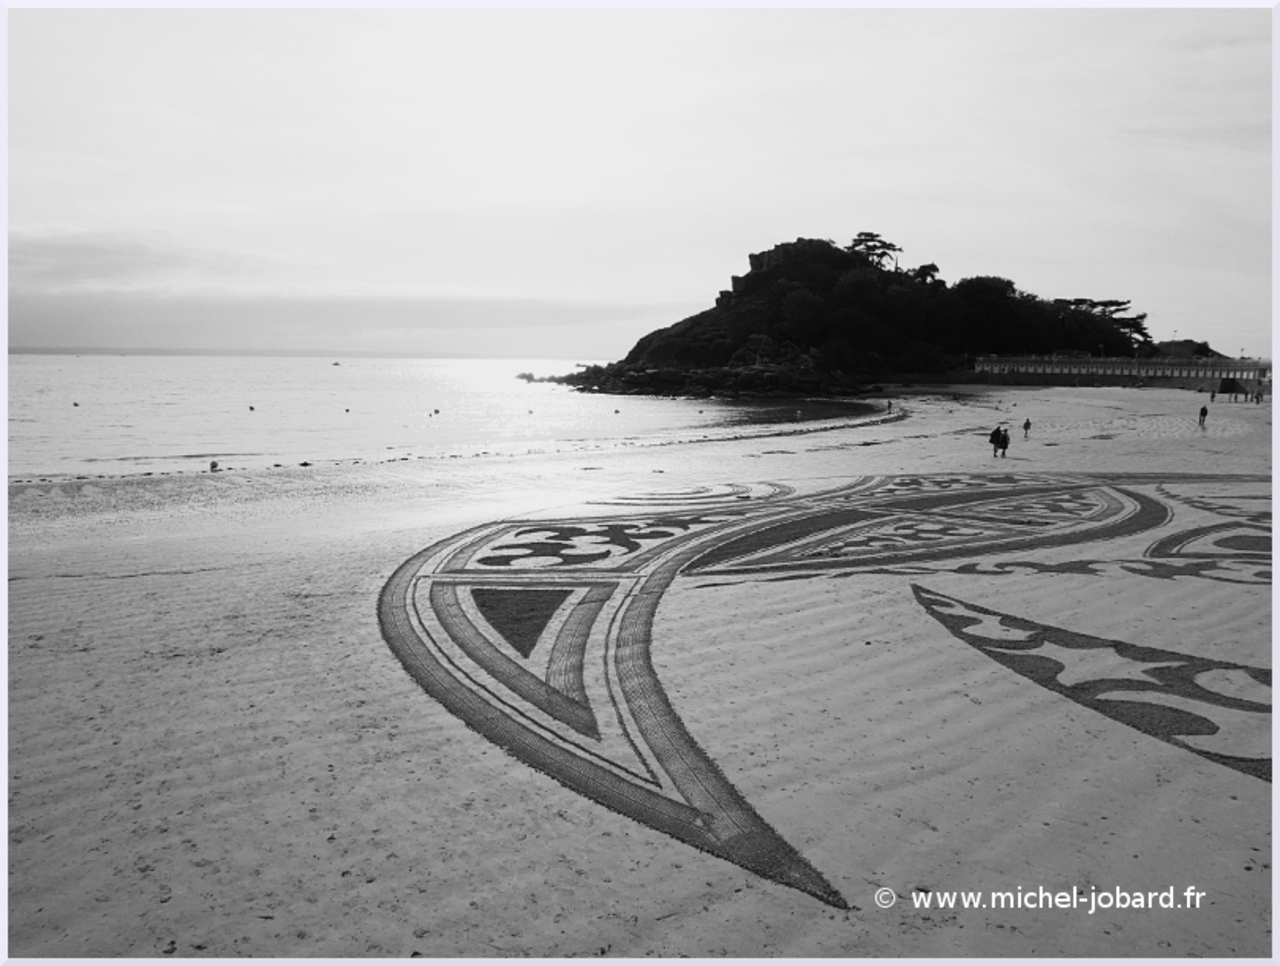 beach-art-celtitude-19-septembre-2016-04